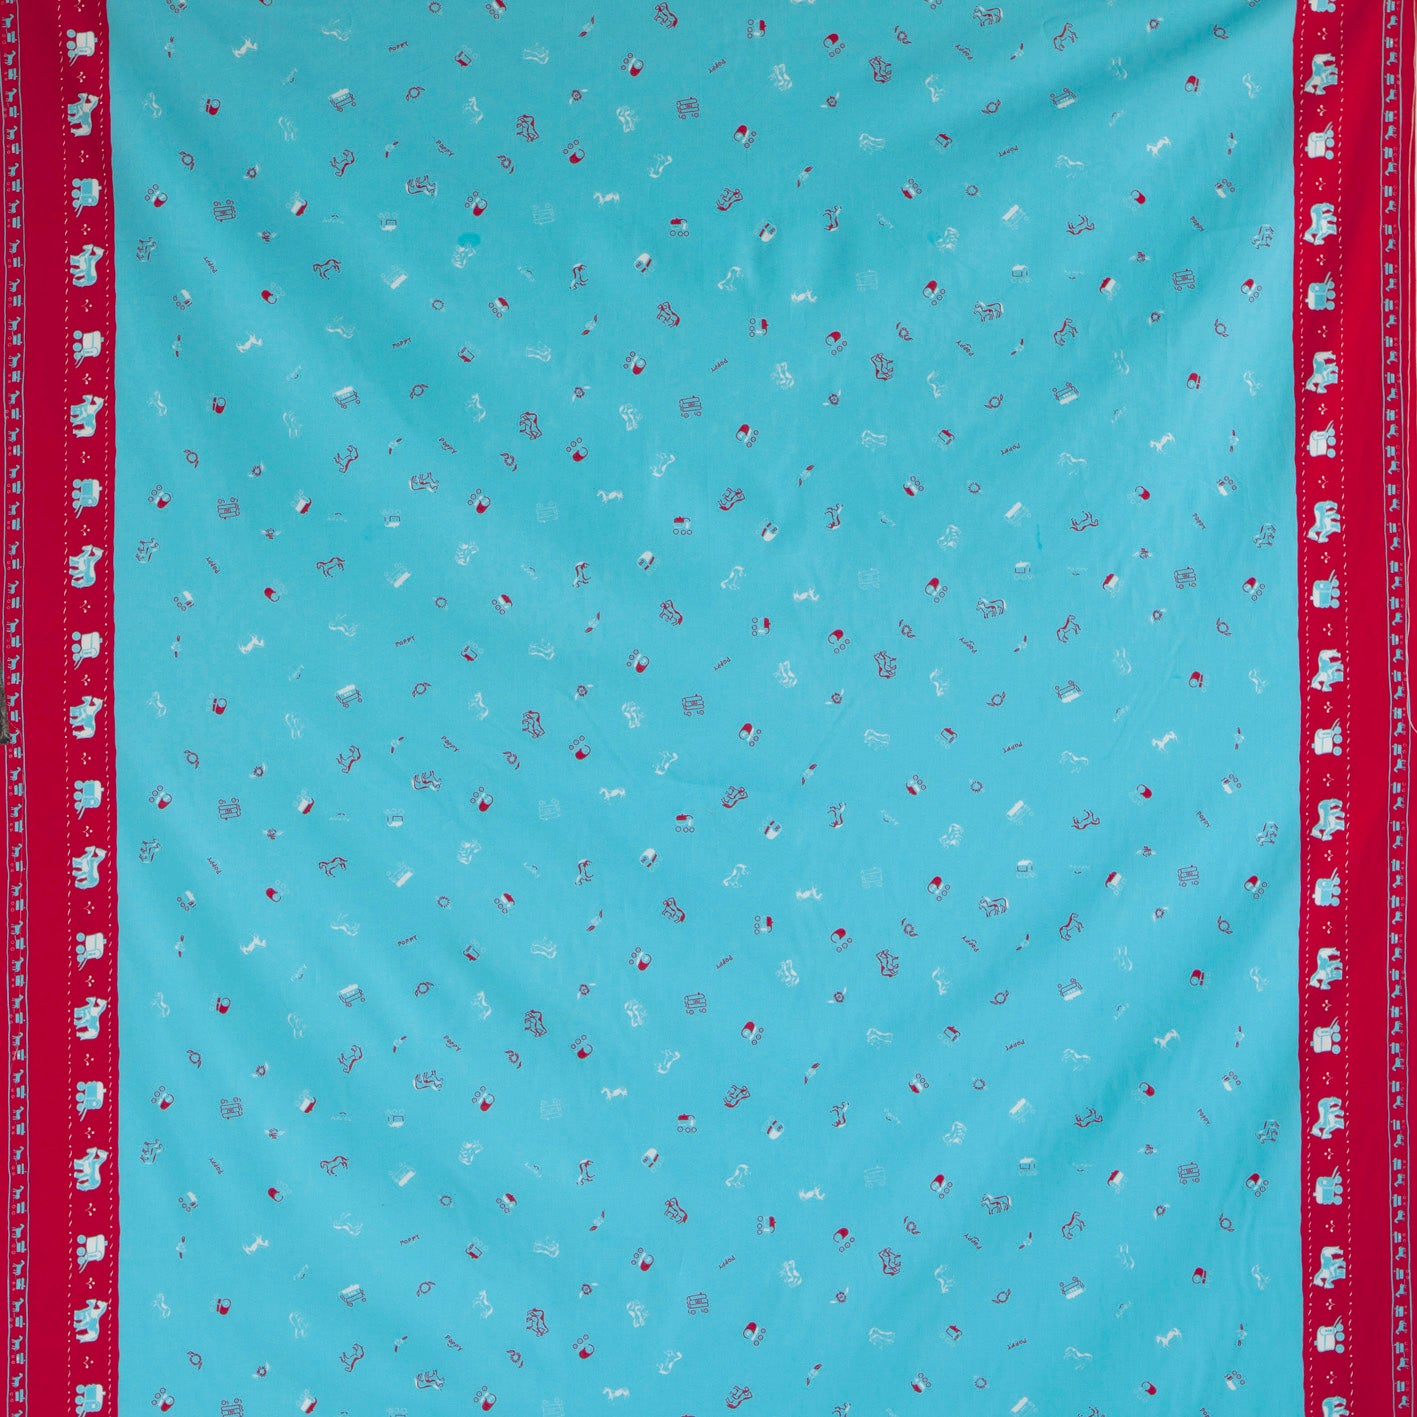 Gypsy Caravan Turquoise Fabric - Cotton